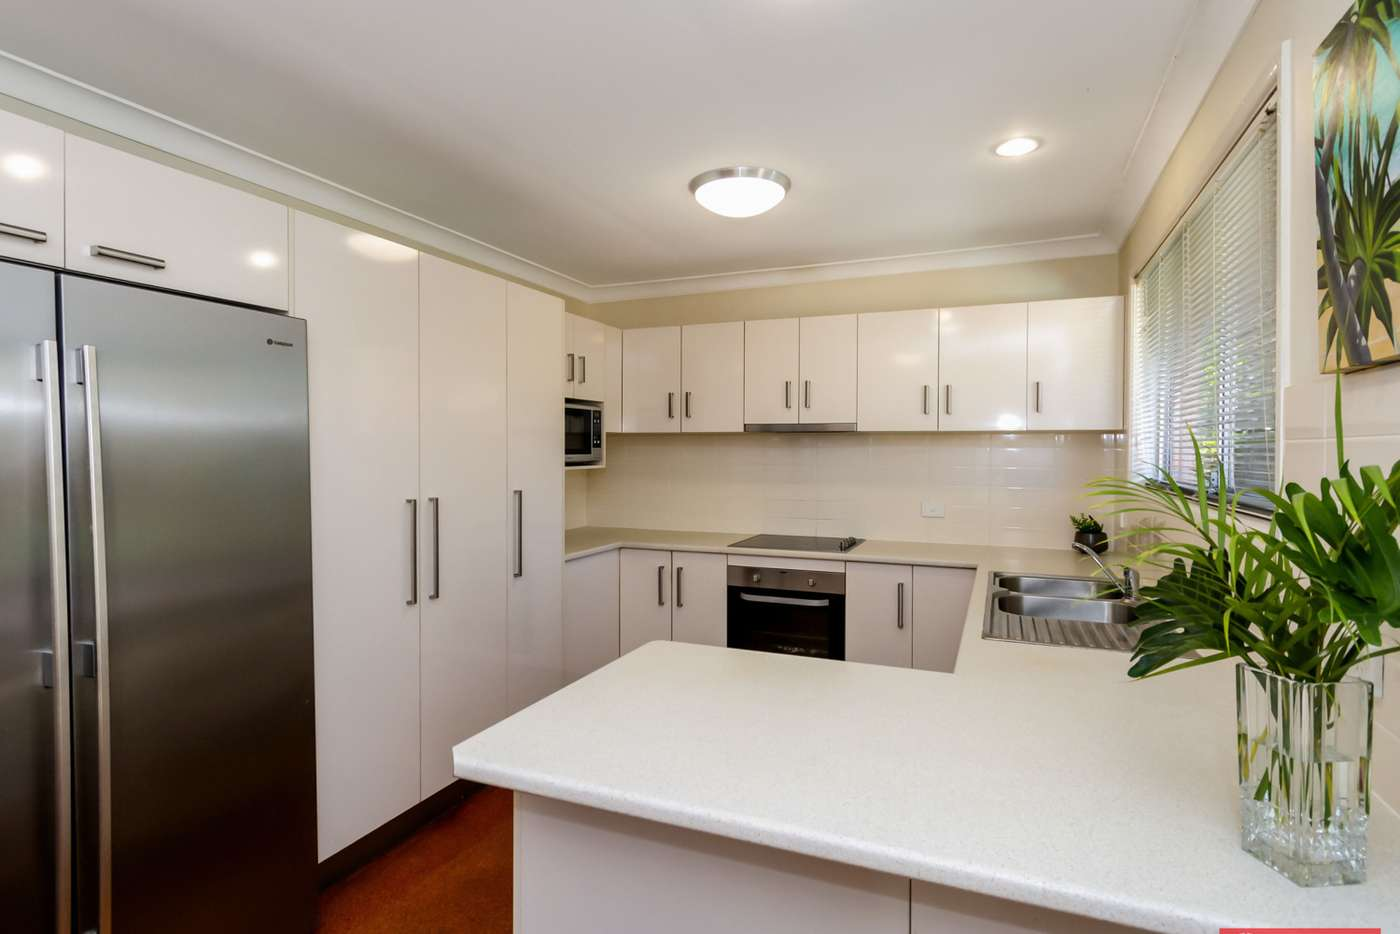 Sixth view of Homely house listing, 38 Leven Street, Coopers Plains QLD 4108